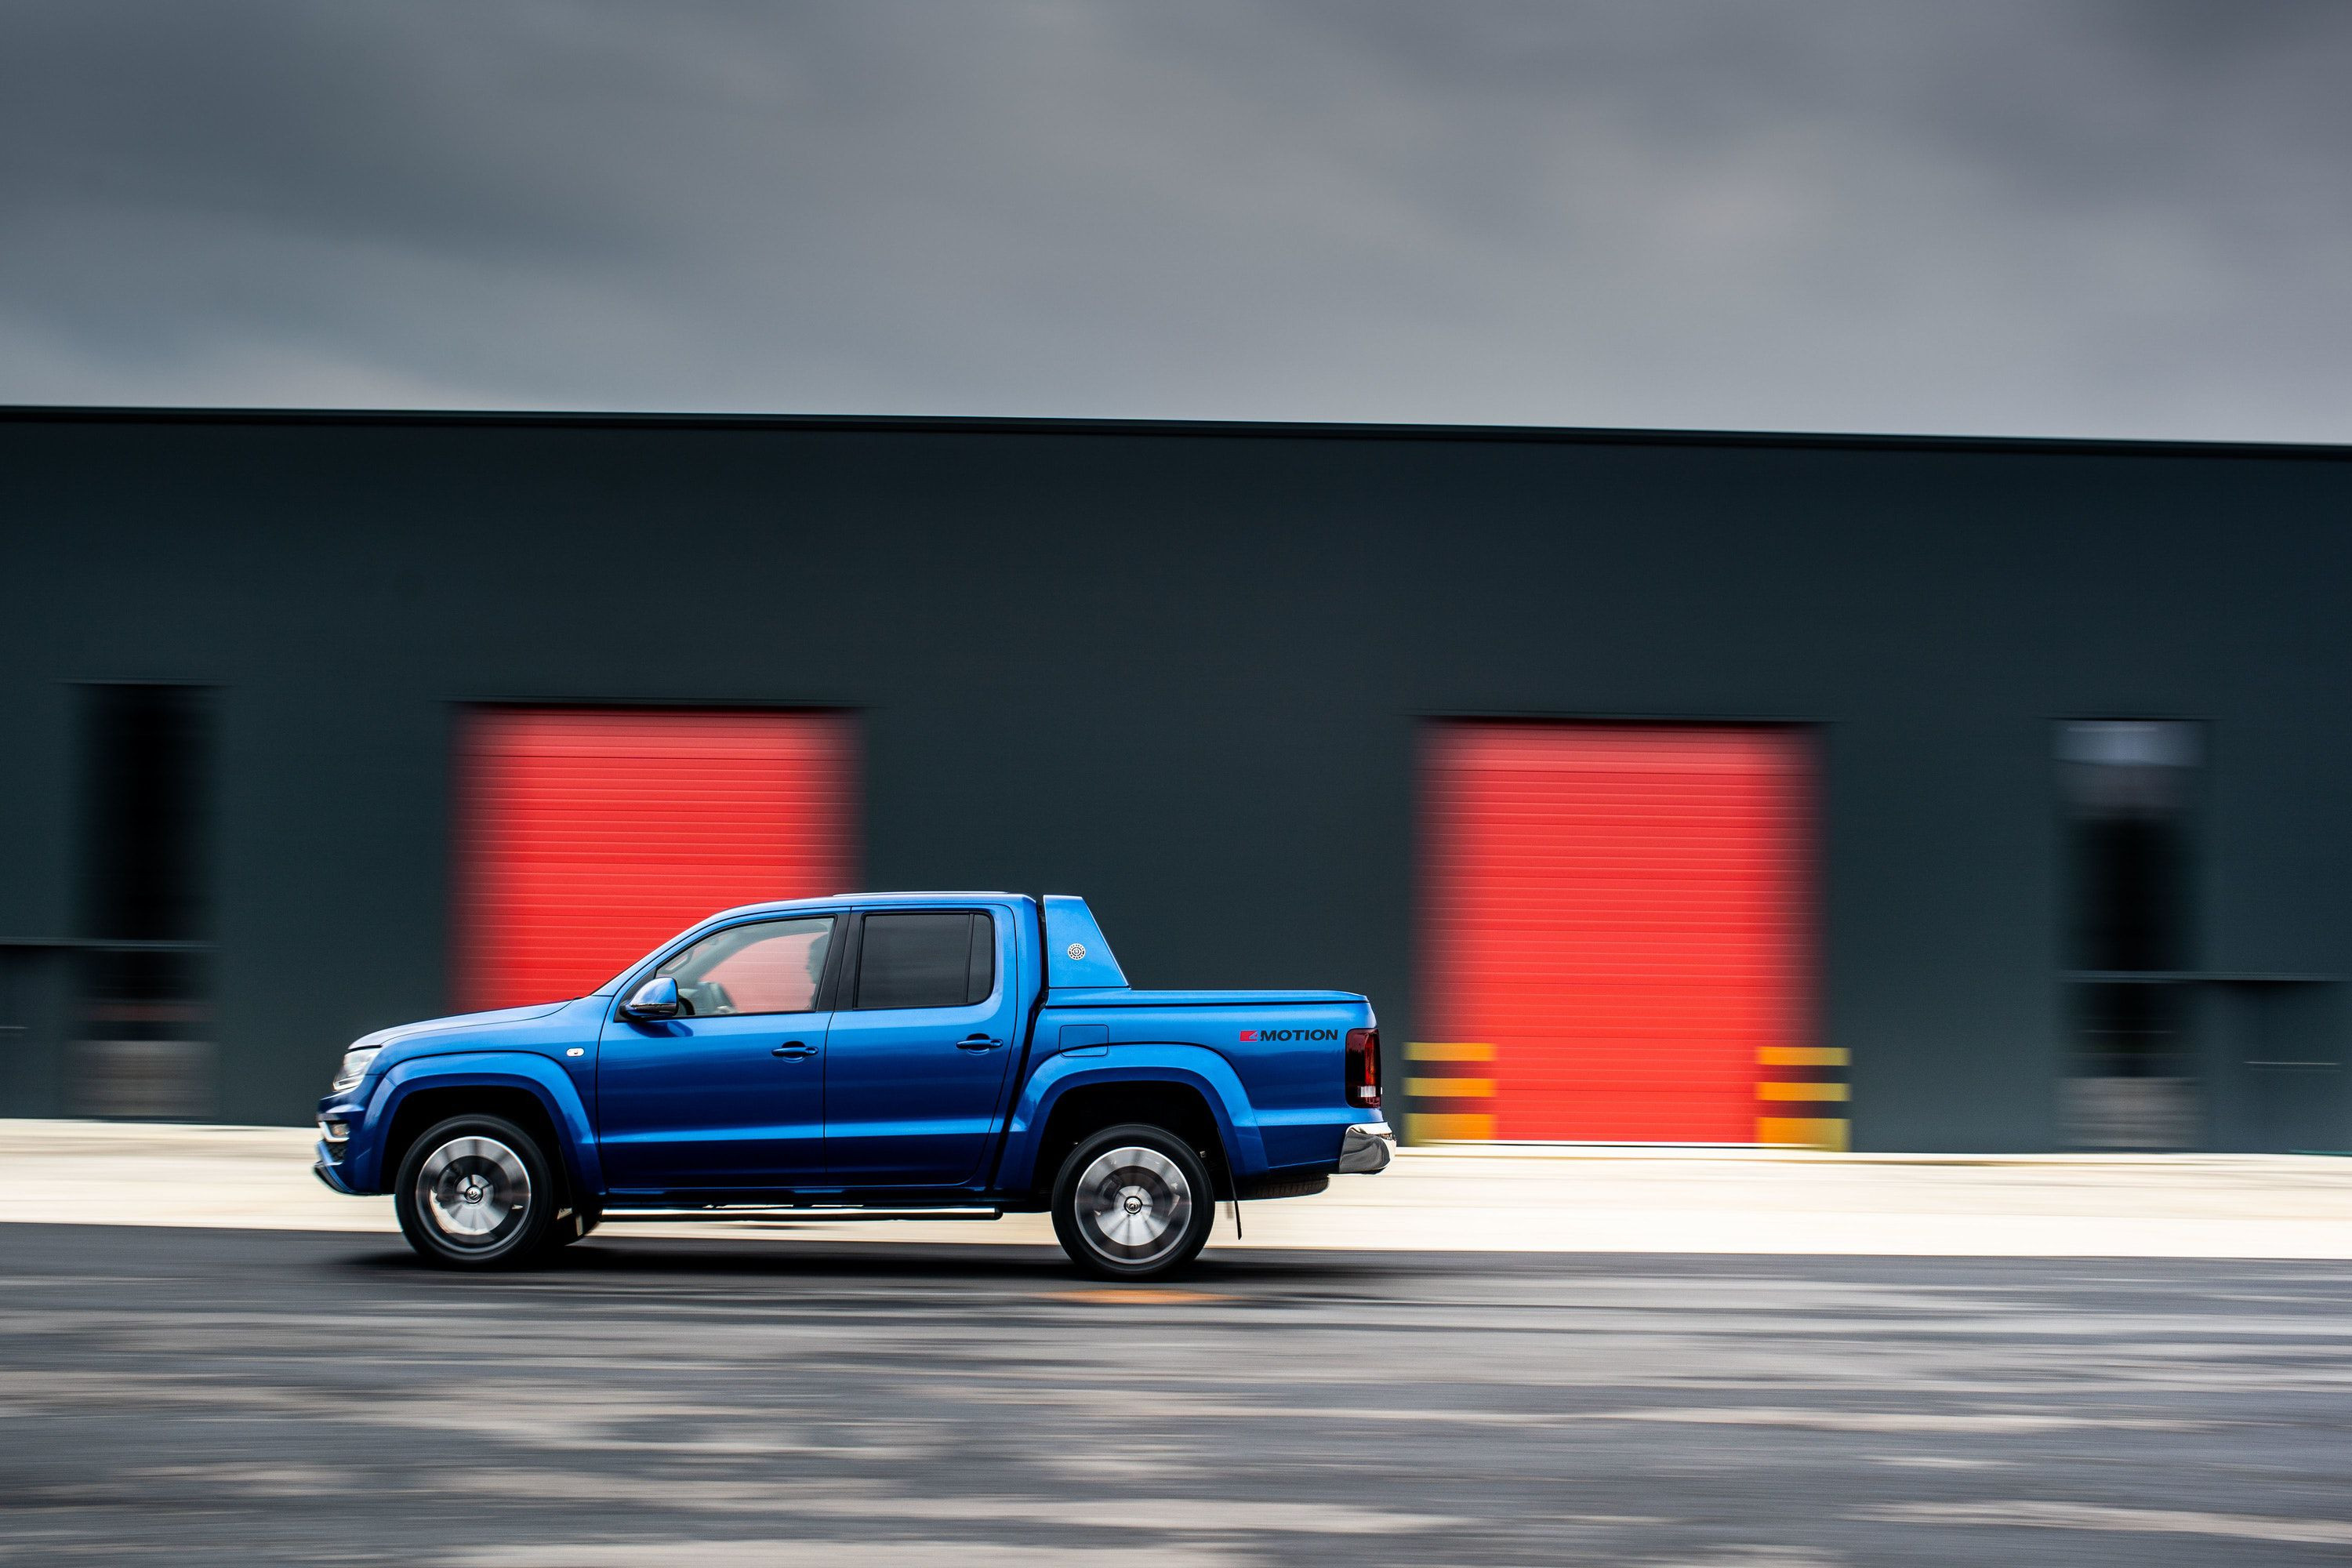 Side view of blue Amarok driving on a road